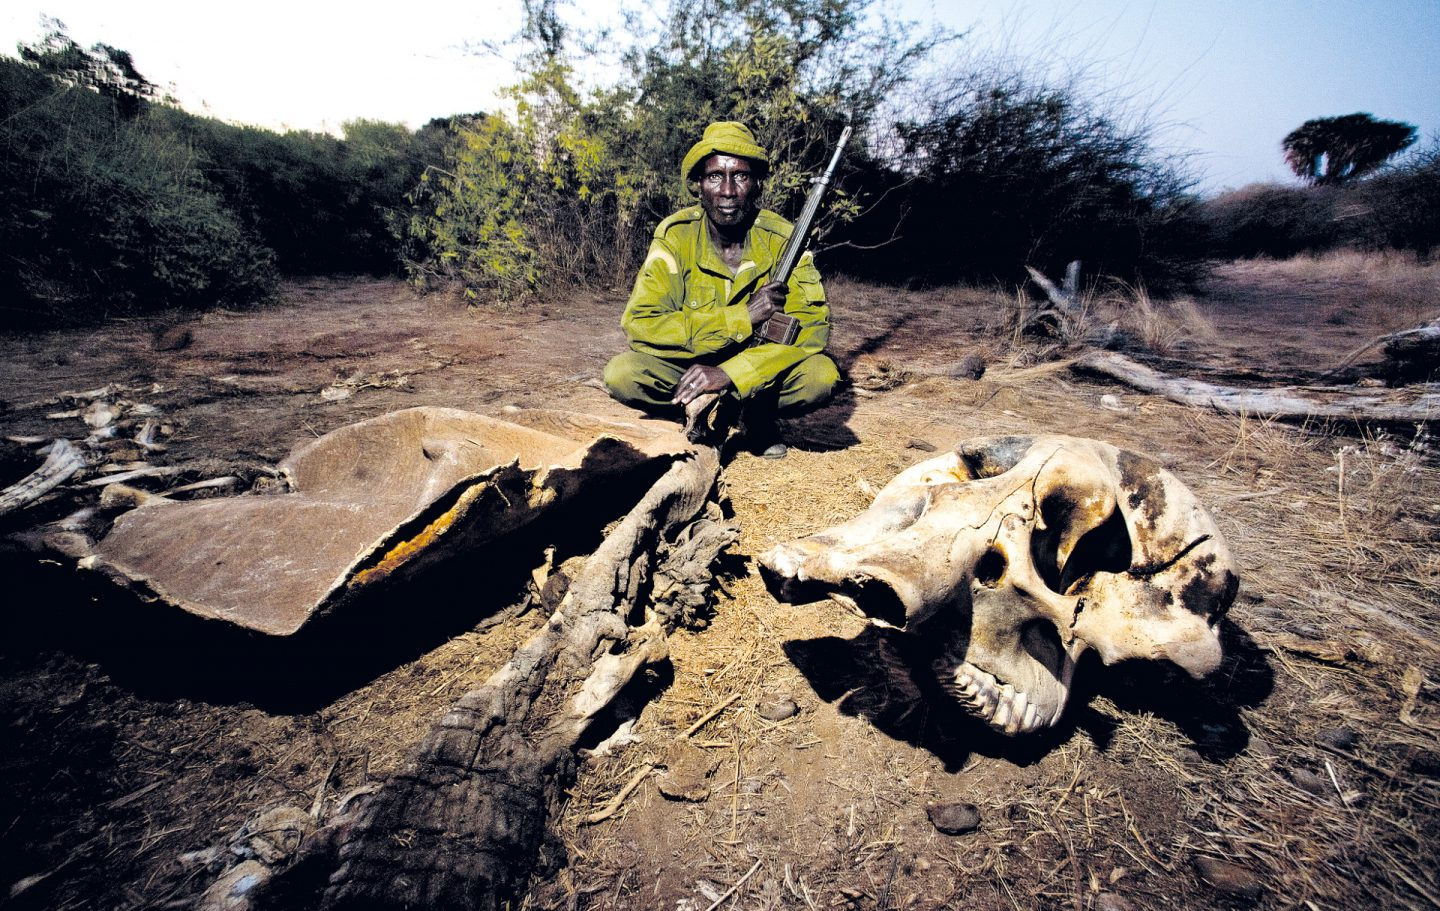 Poaching & Illegal Wildlife Trade